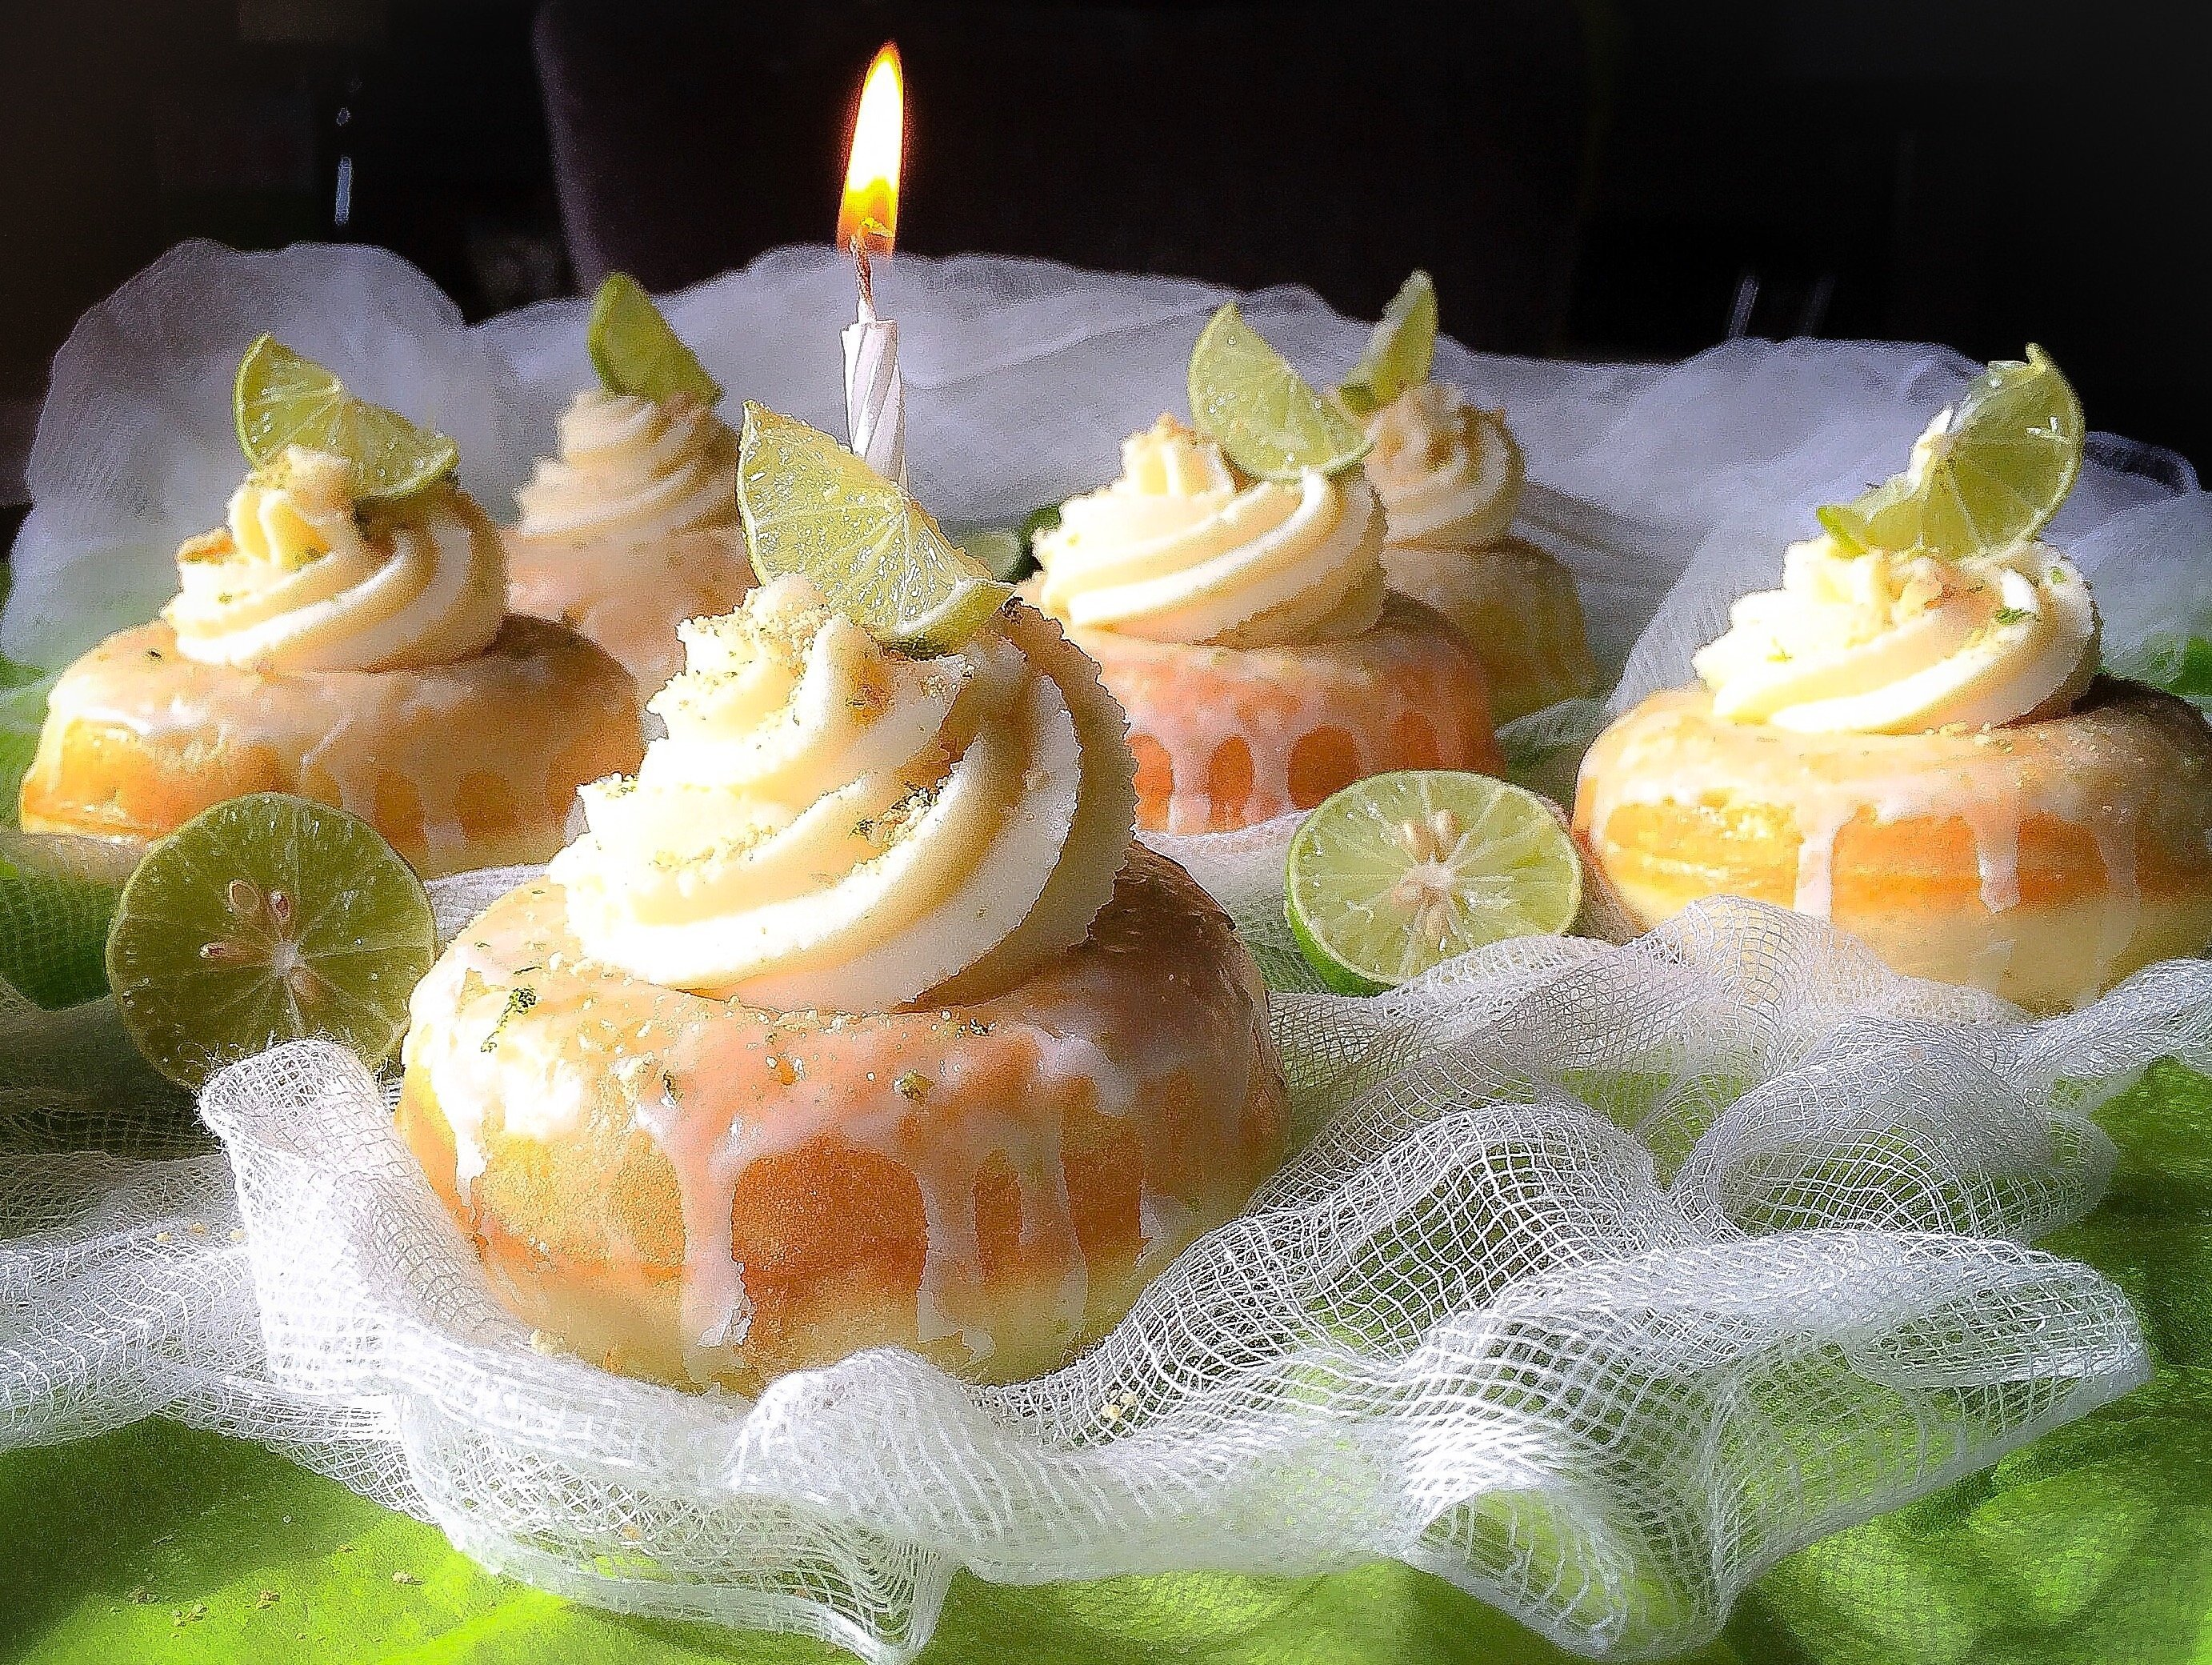 Julie's Key Lime Birthday Cake Glazed Donuts topped with a Key Lime Mascarpone Cream Frosting